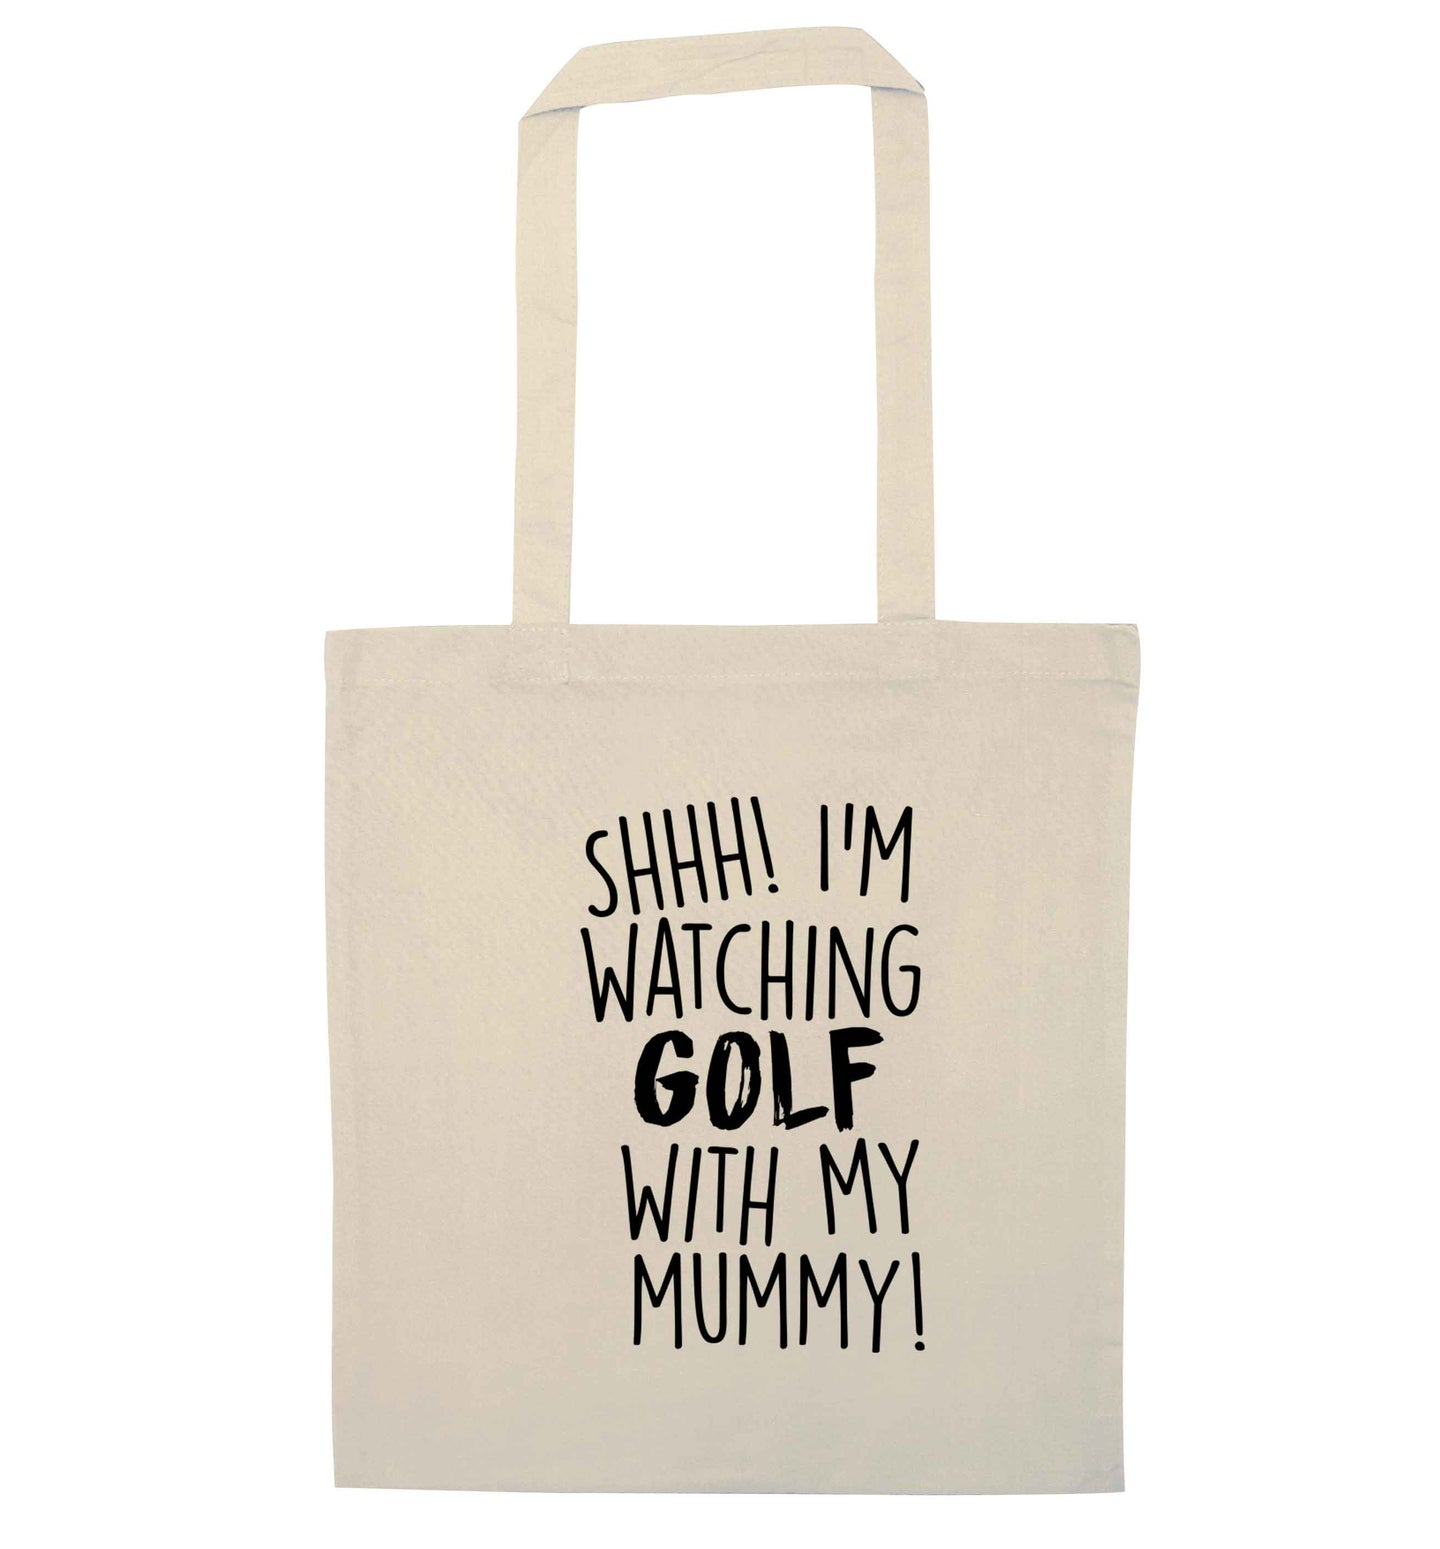 Shh I'm watching golf with my mummy natural tote bag